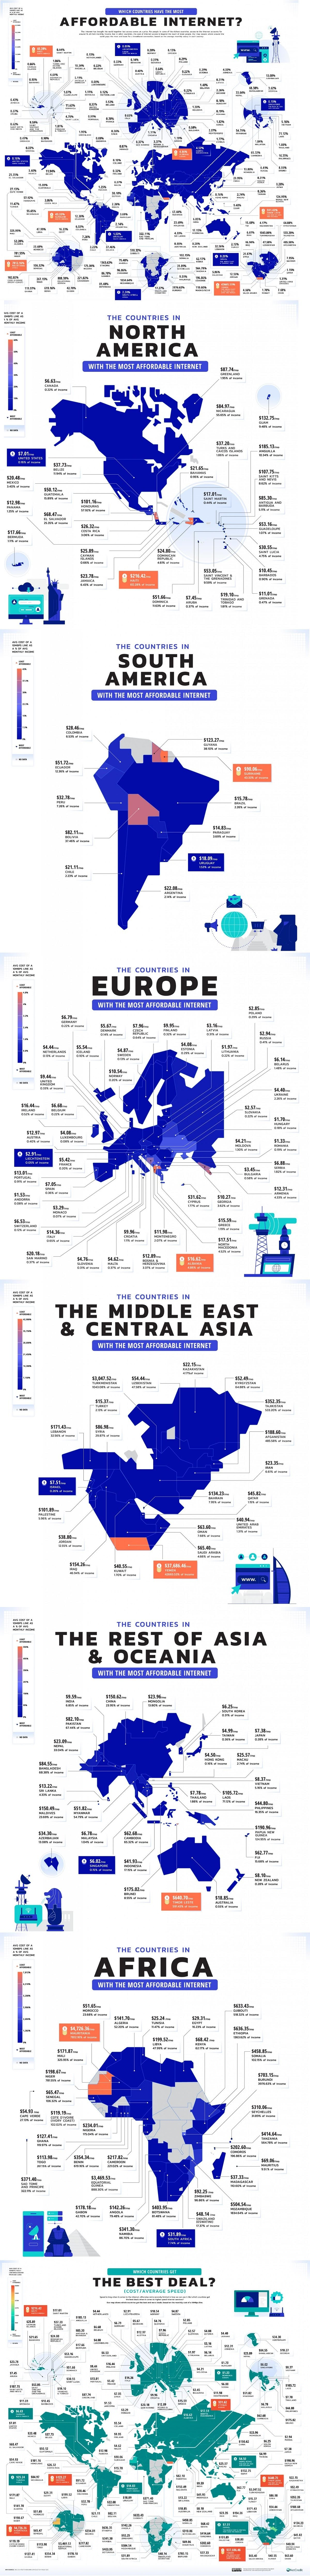 which-countries-have-the-most-affordable-internet-infographic